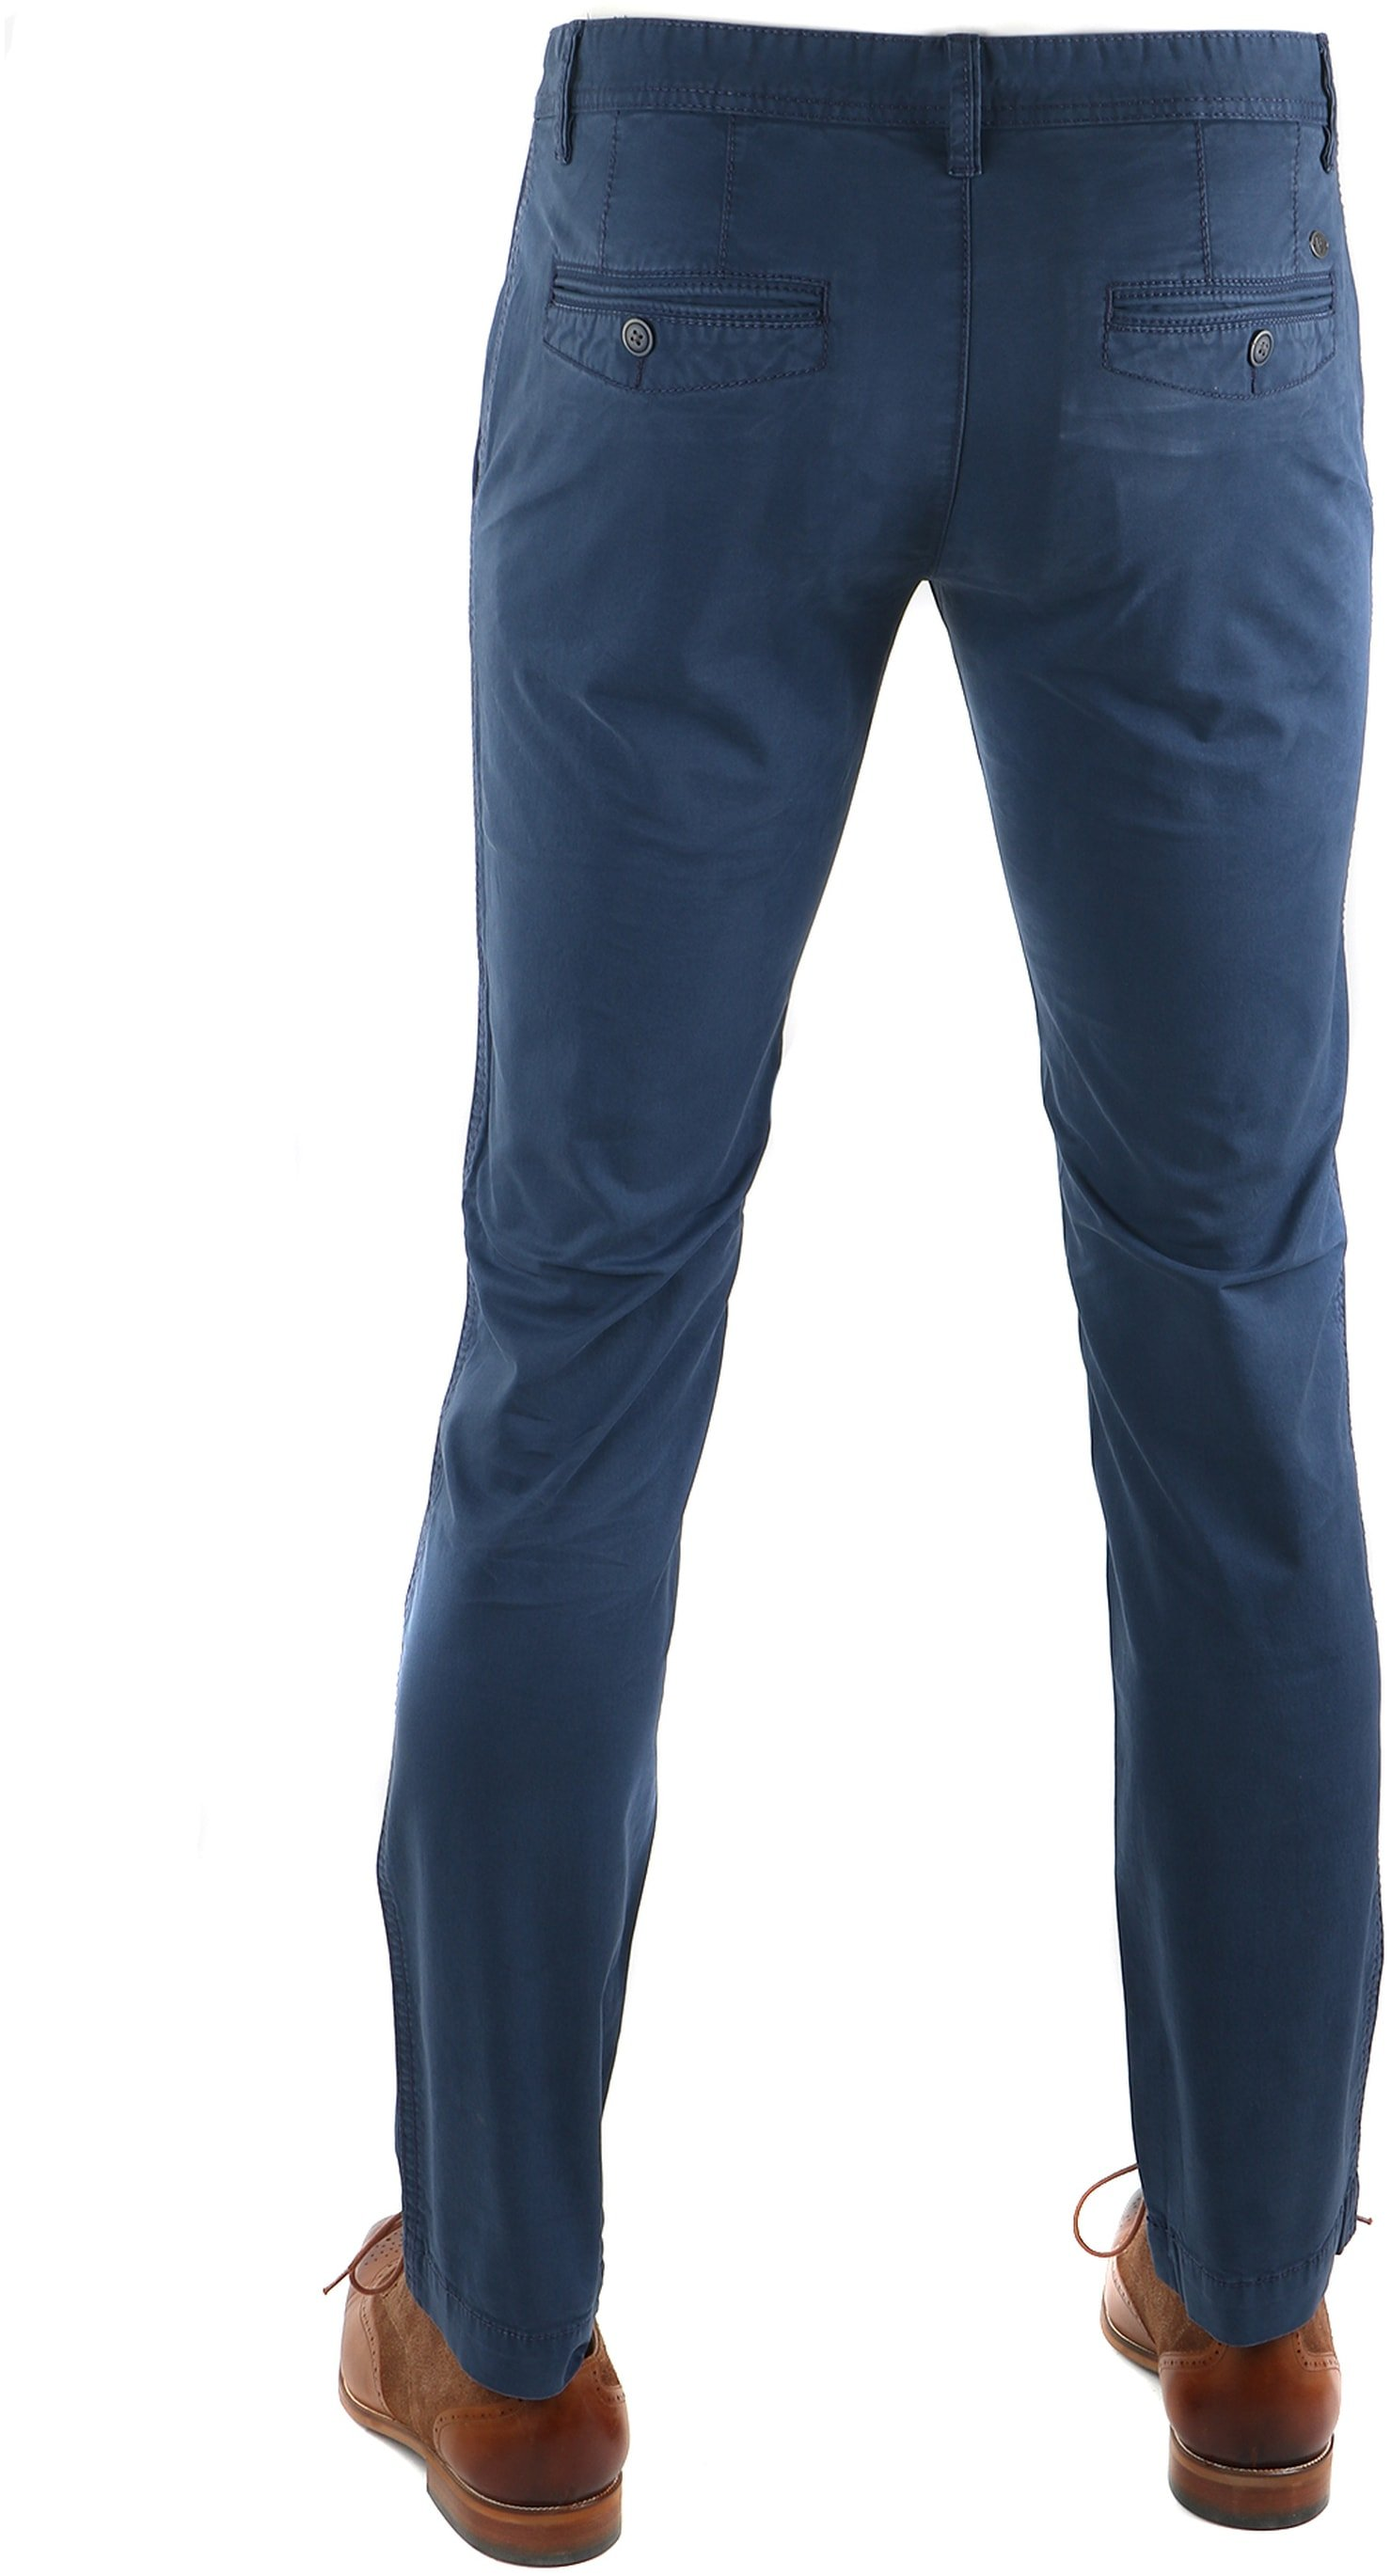 Suitable Chino Oakville Donkerblauw foto 1